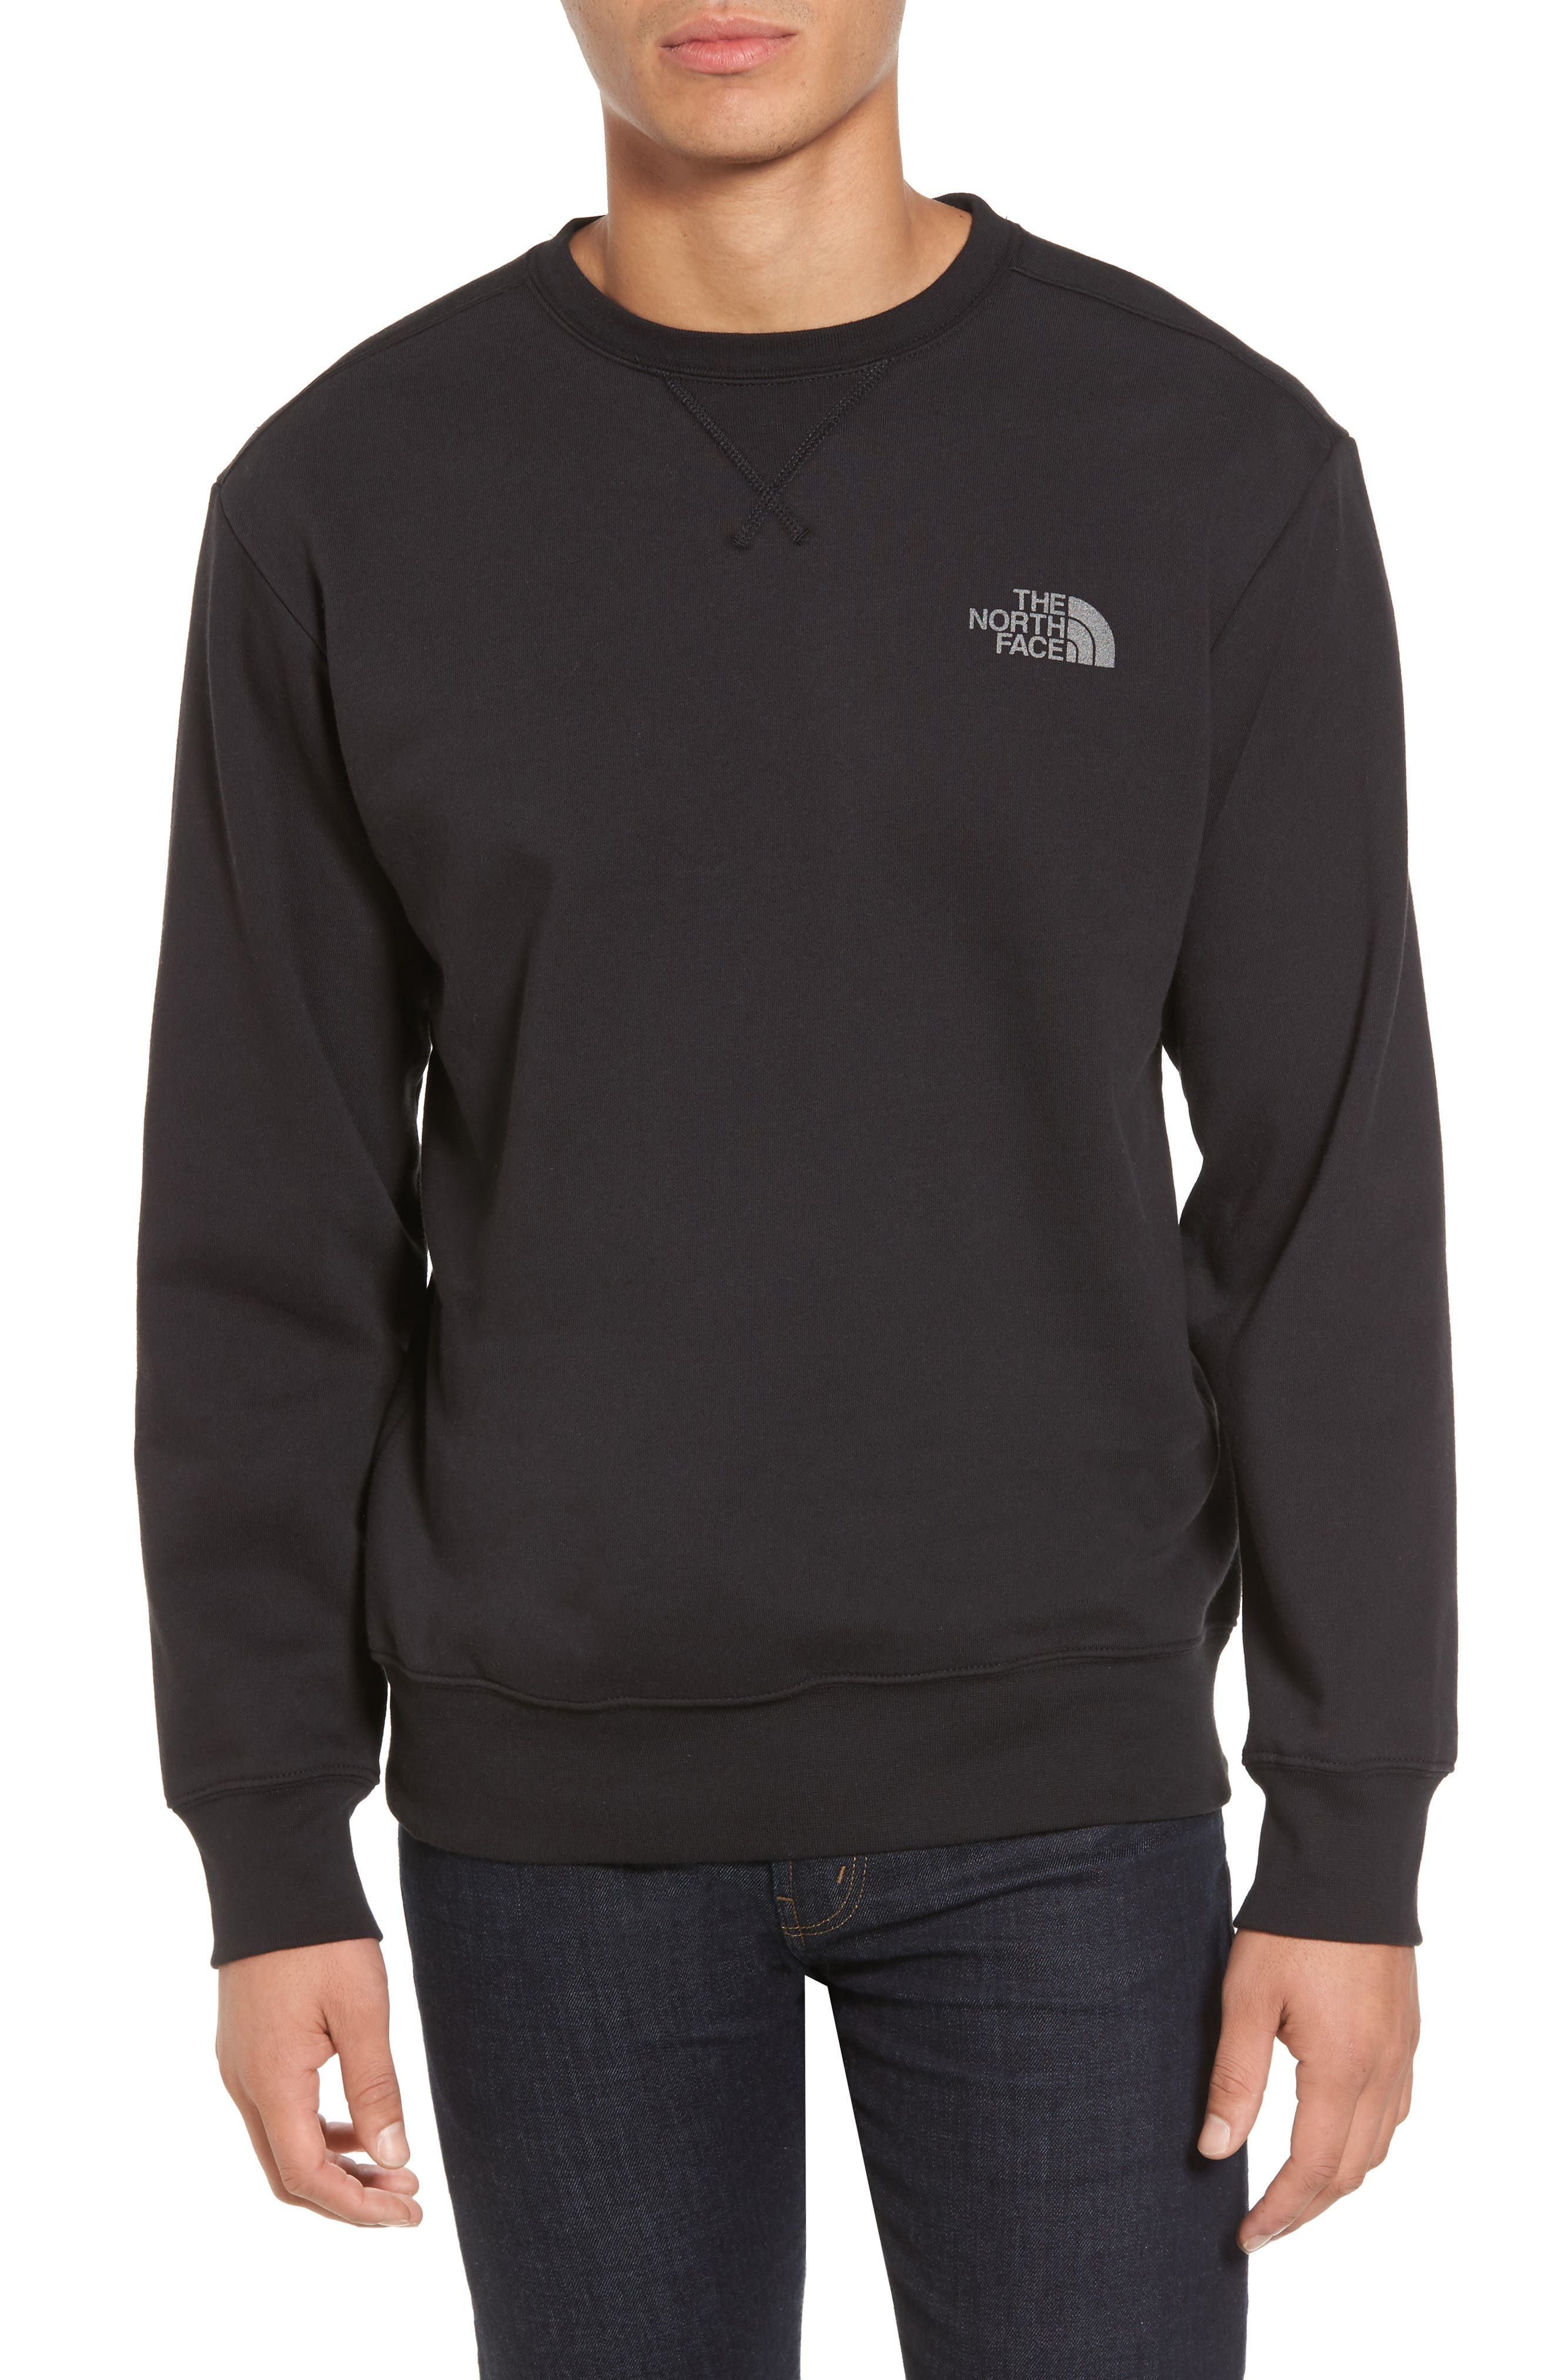 The North Face 'Half Dome' Crewneck Sweatshirt